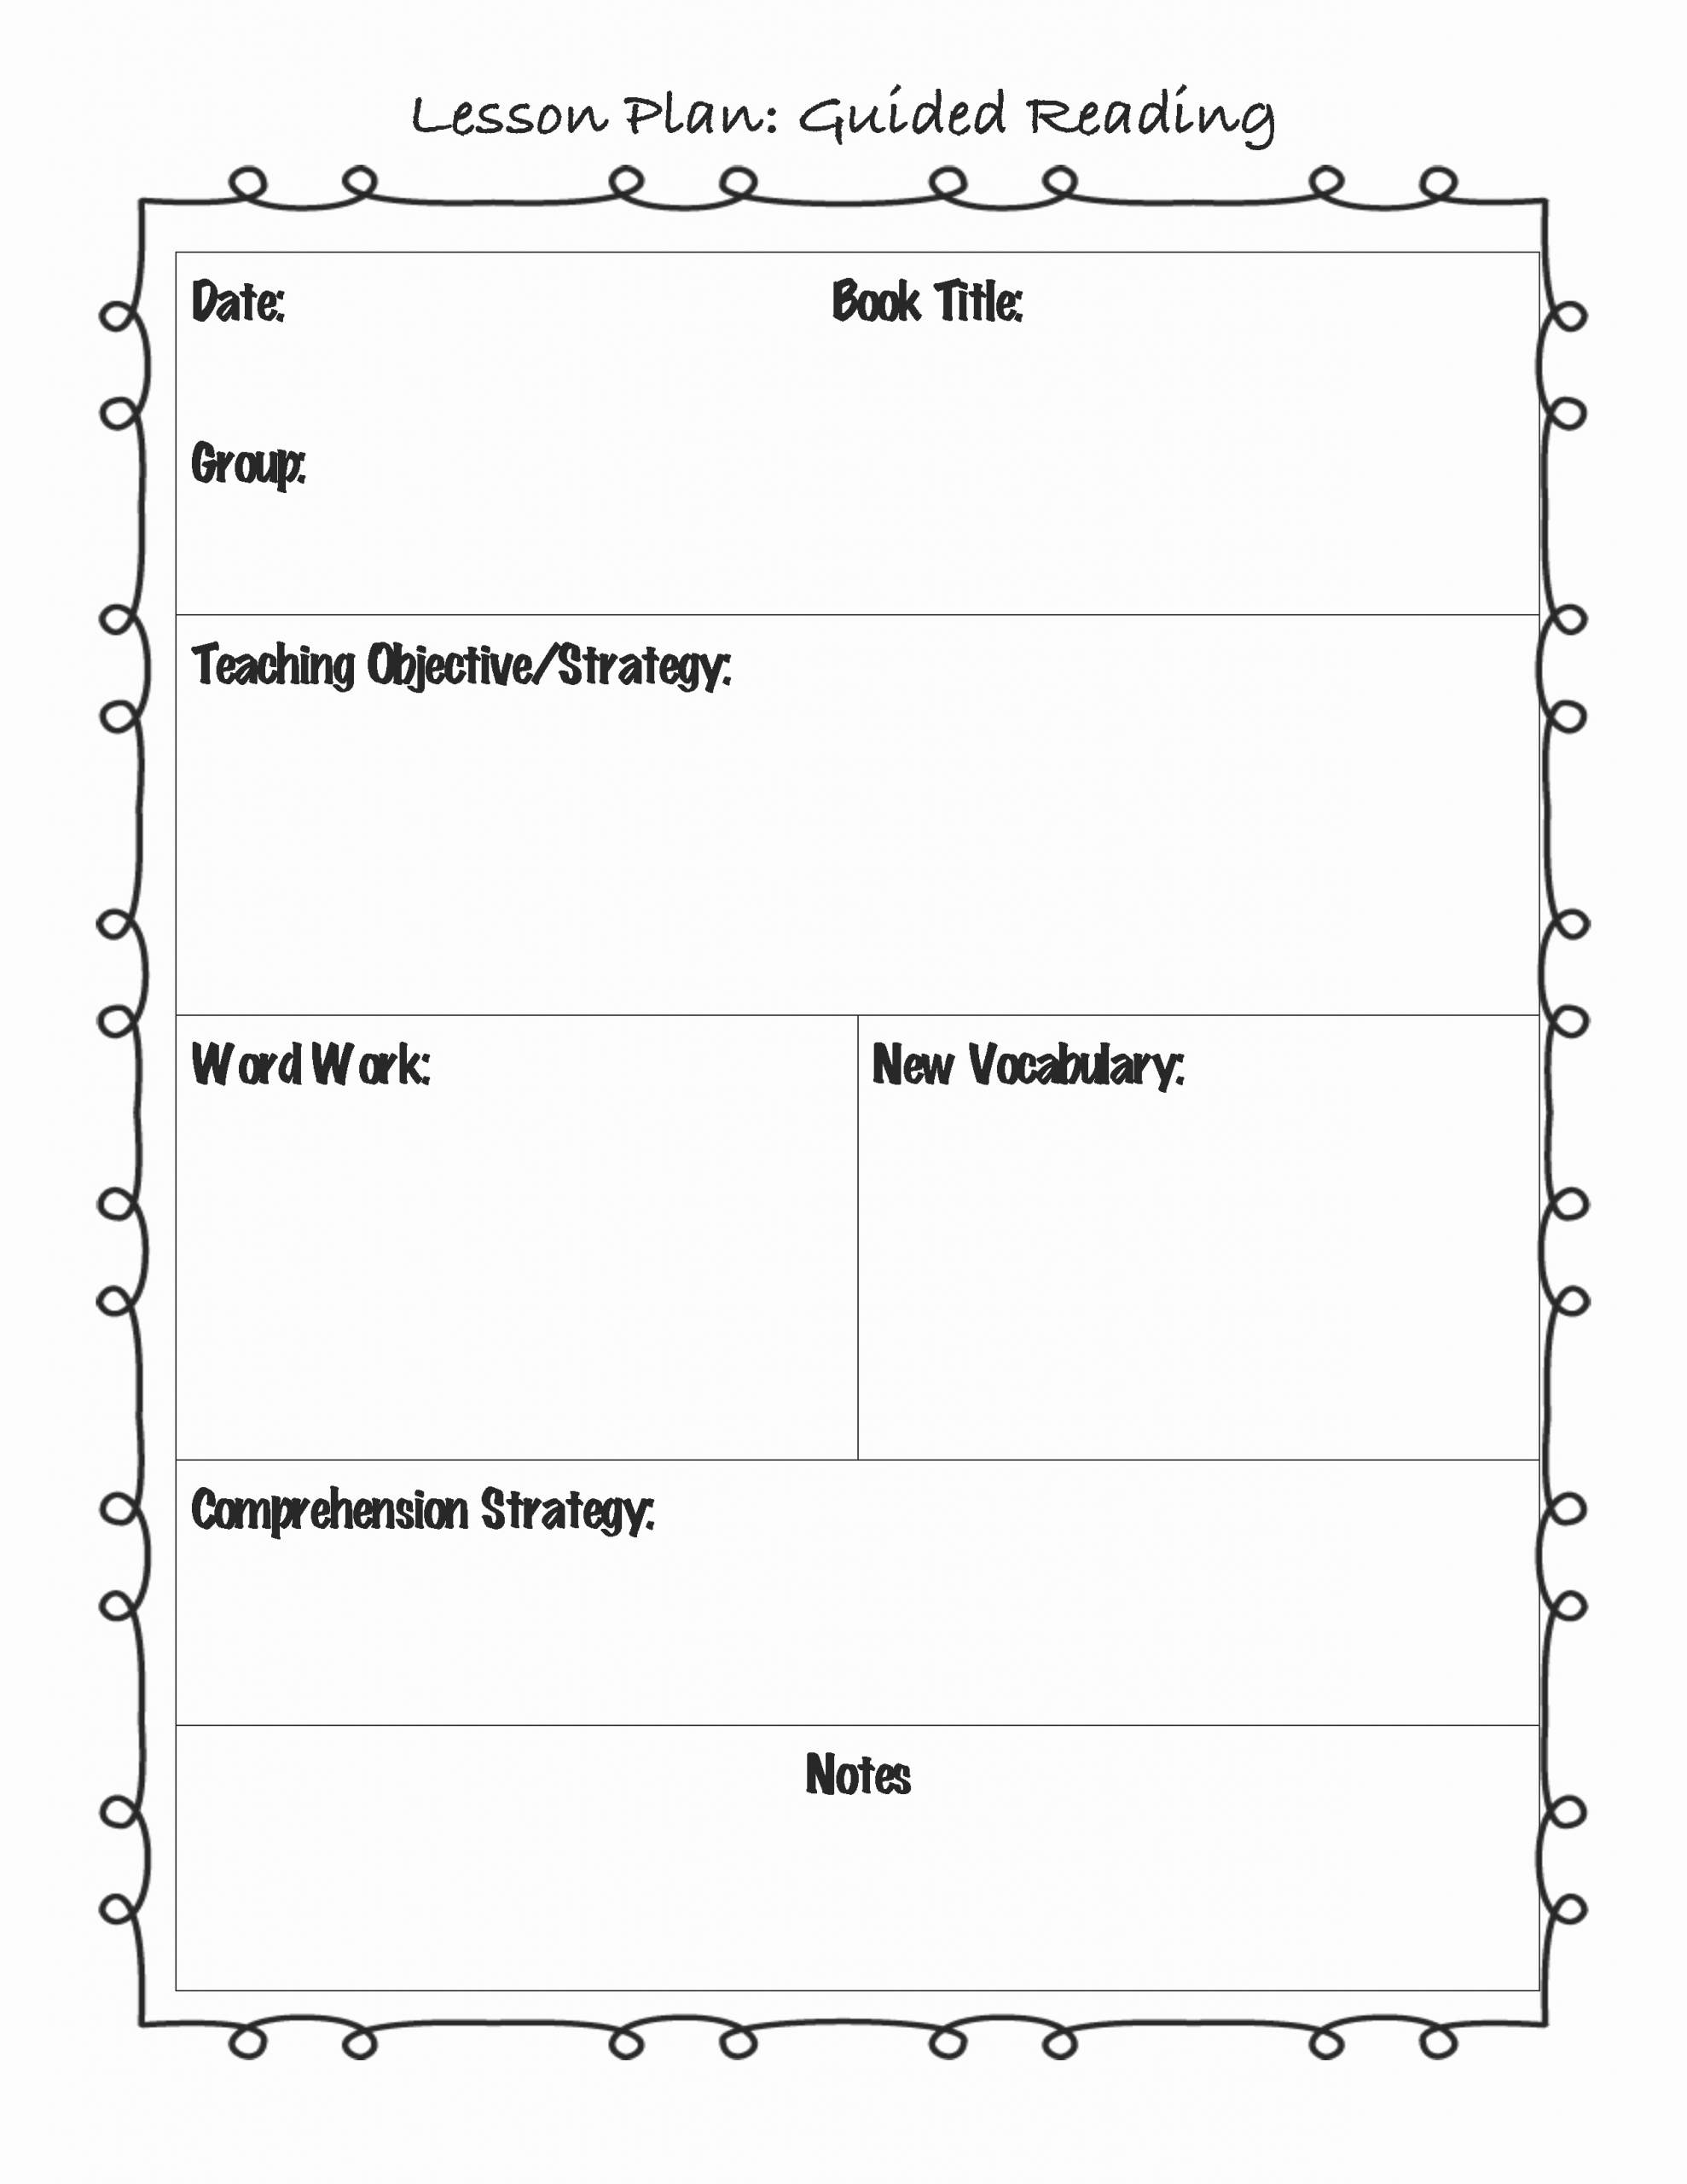 Weekly Lesson Plan Template Elementary Elegant Guided Reading Lesson Plan Template